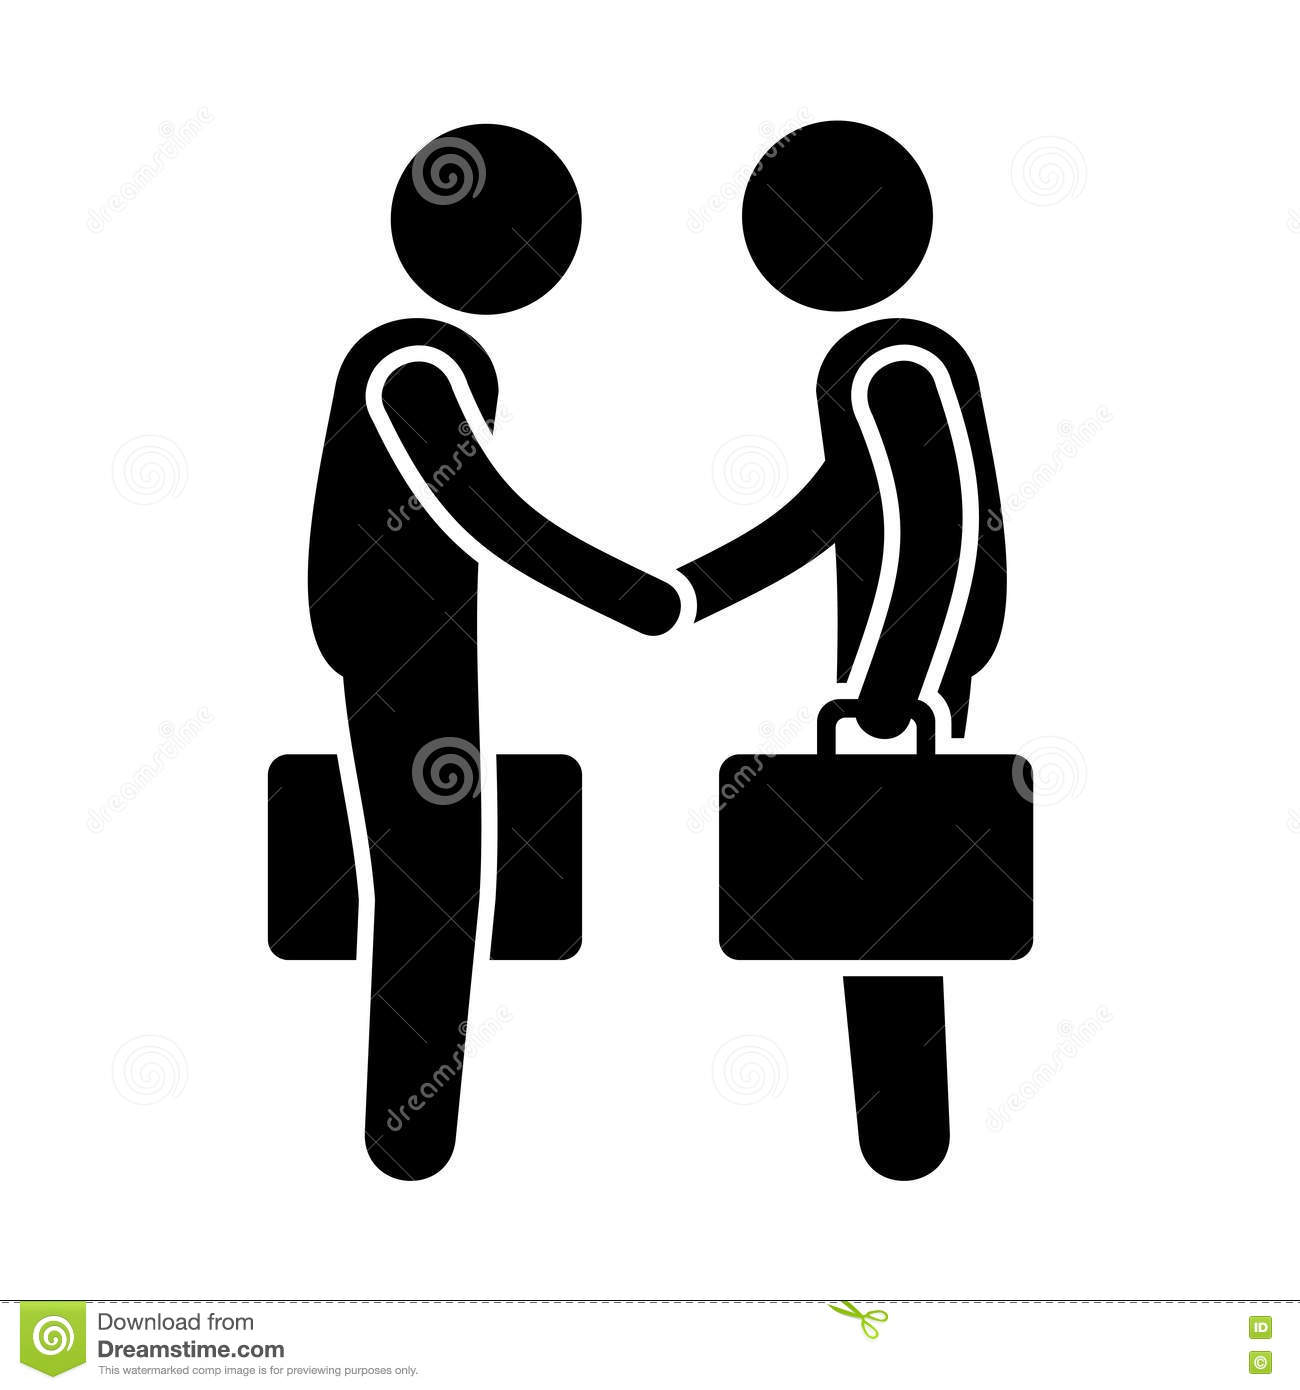 Business people handshake greeting deal at work photo free download - Business Figure Gesture Handshake Icon Pictogram Stick High Greeting Shake Embrace Person